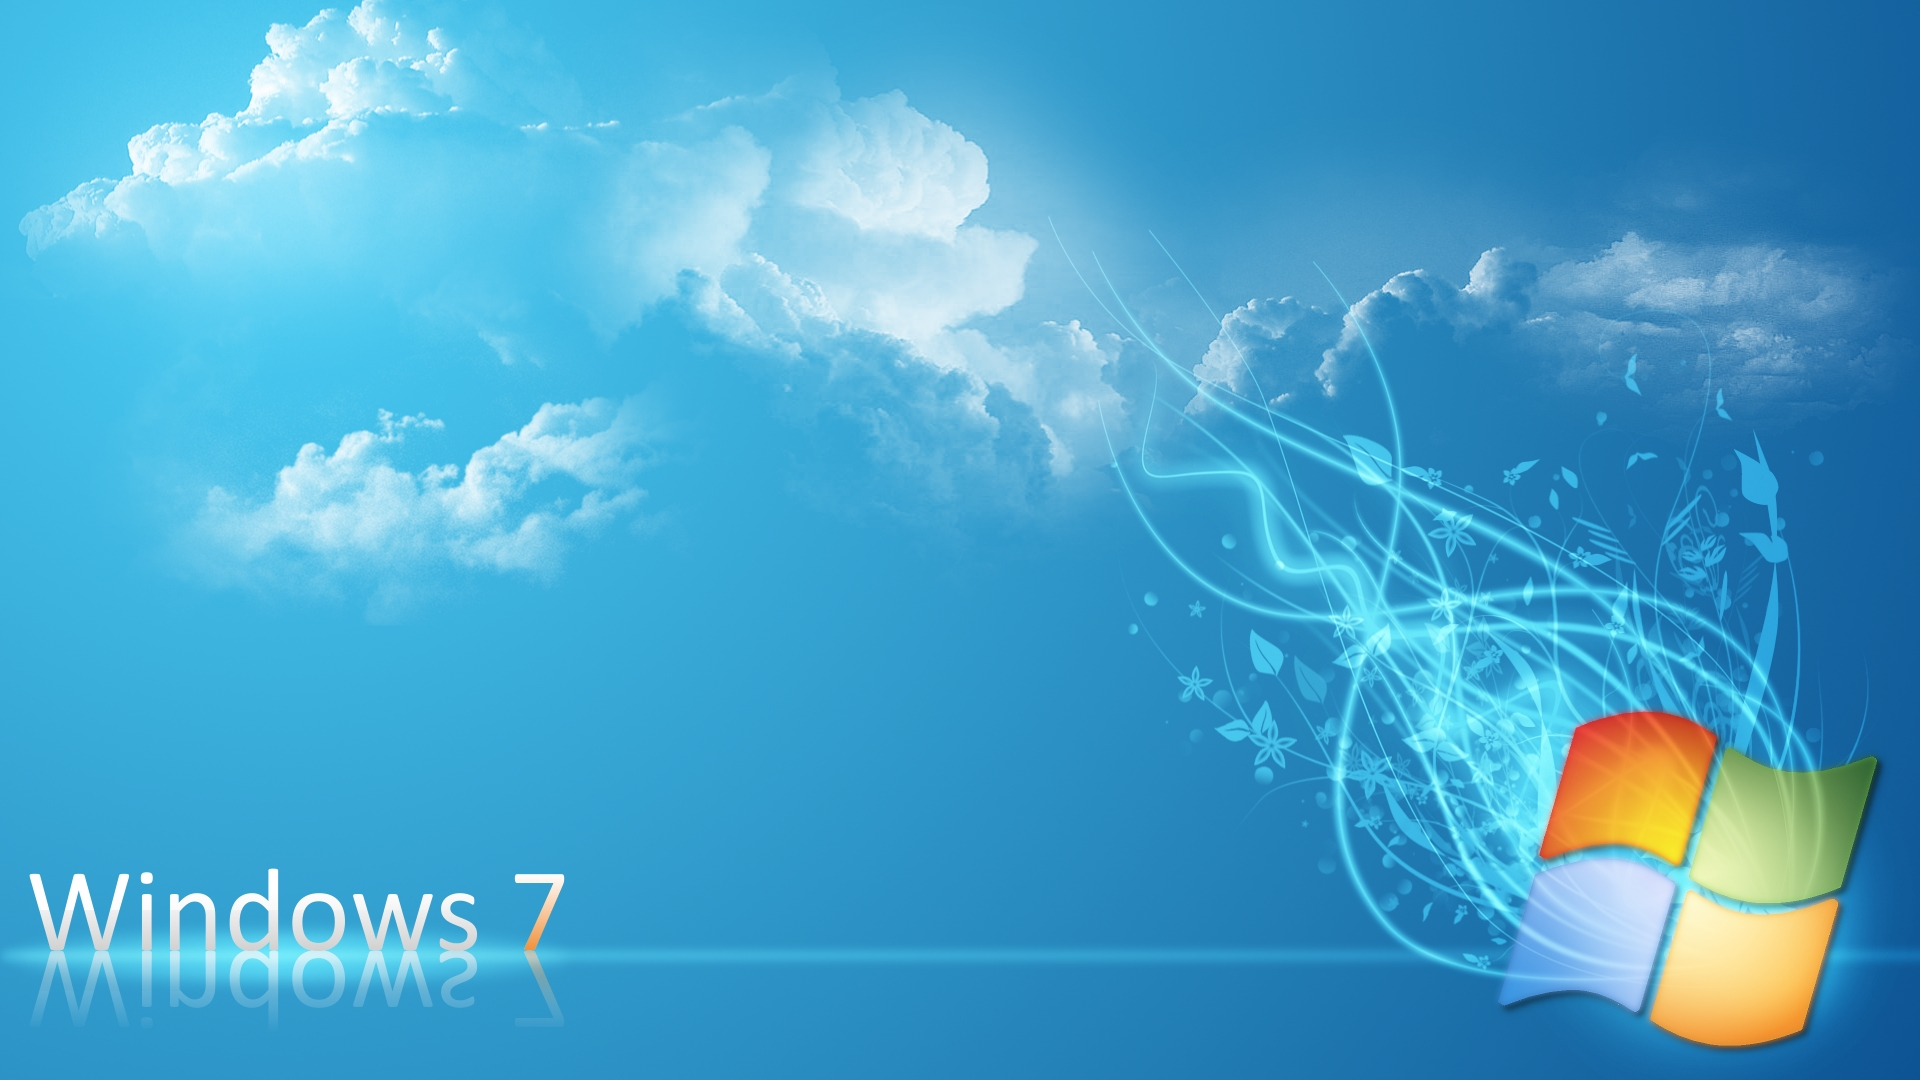 Windows 7 Wallpapers HD